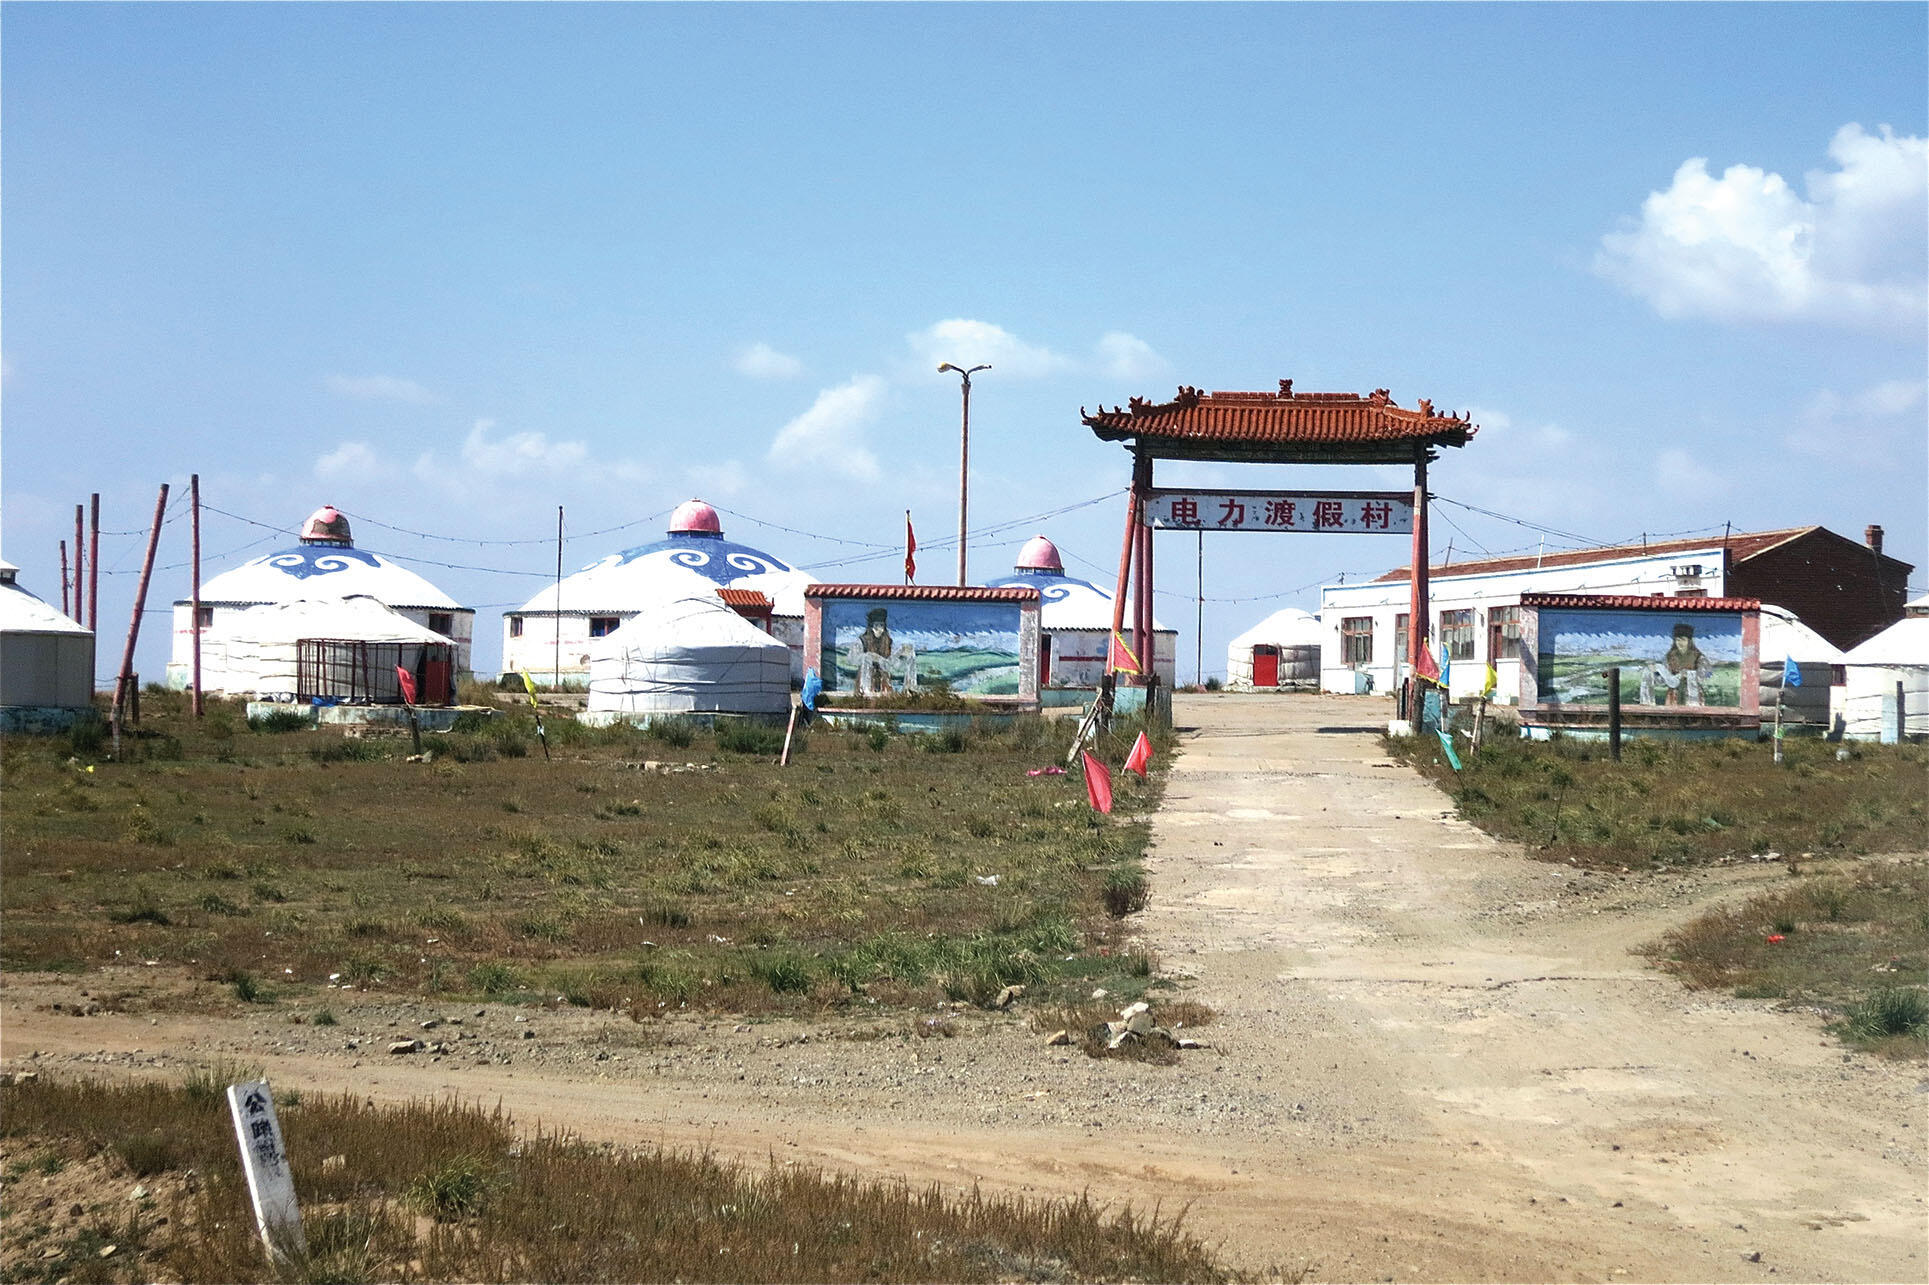 """Concrete yurts in a dusty landscape for a supposedly """"authentic Mongolian eco-tourism resort"""" built in an attempt to provide traditional herders with an alternate source of income. (Photo by Julie Klinger.)"""